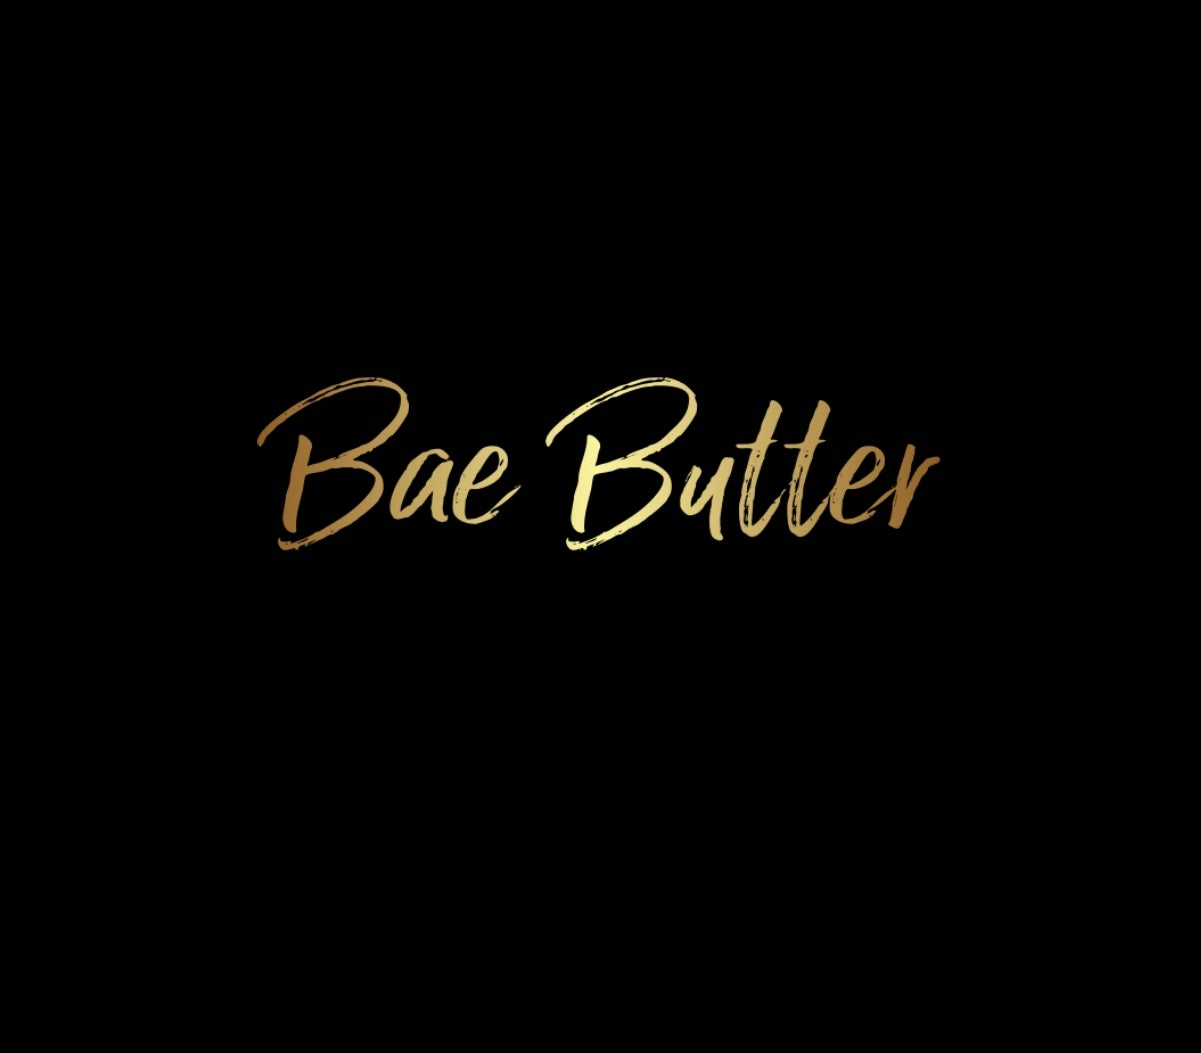 Image of 'Bae Butter'